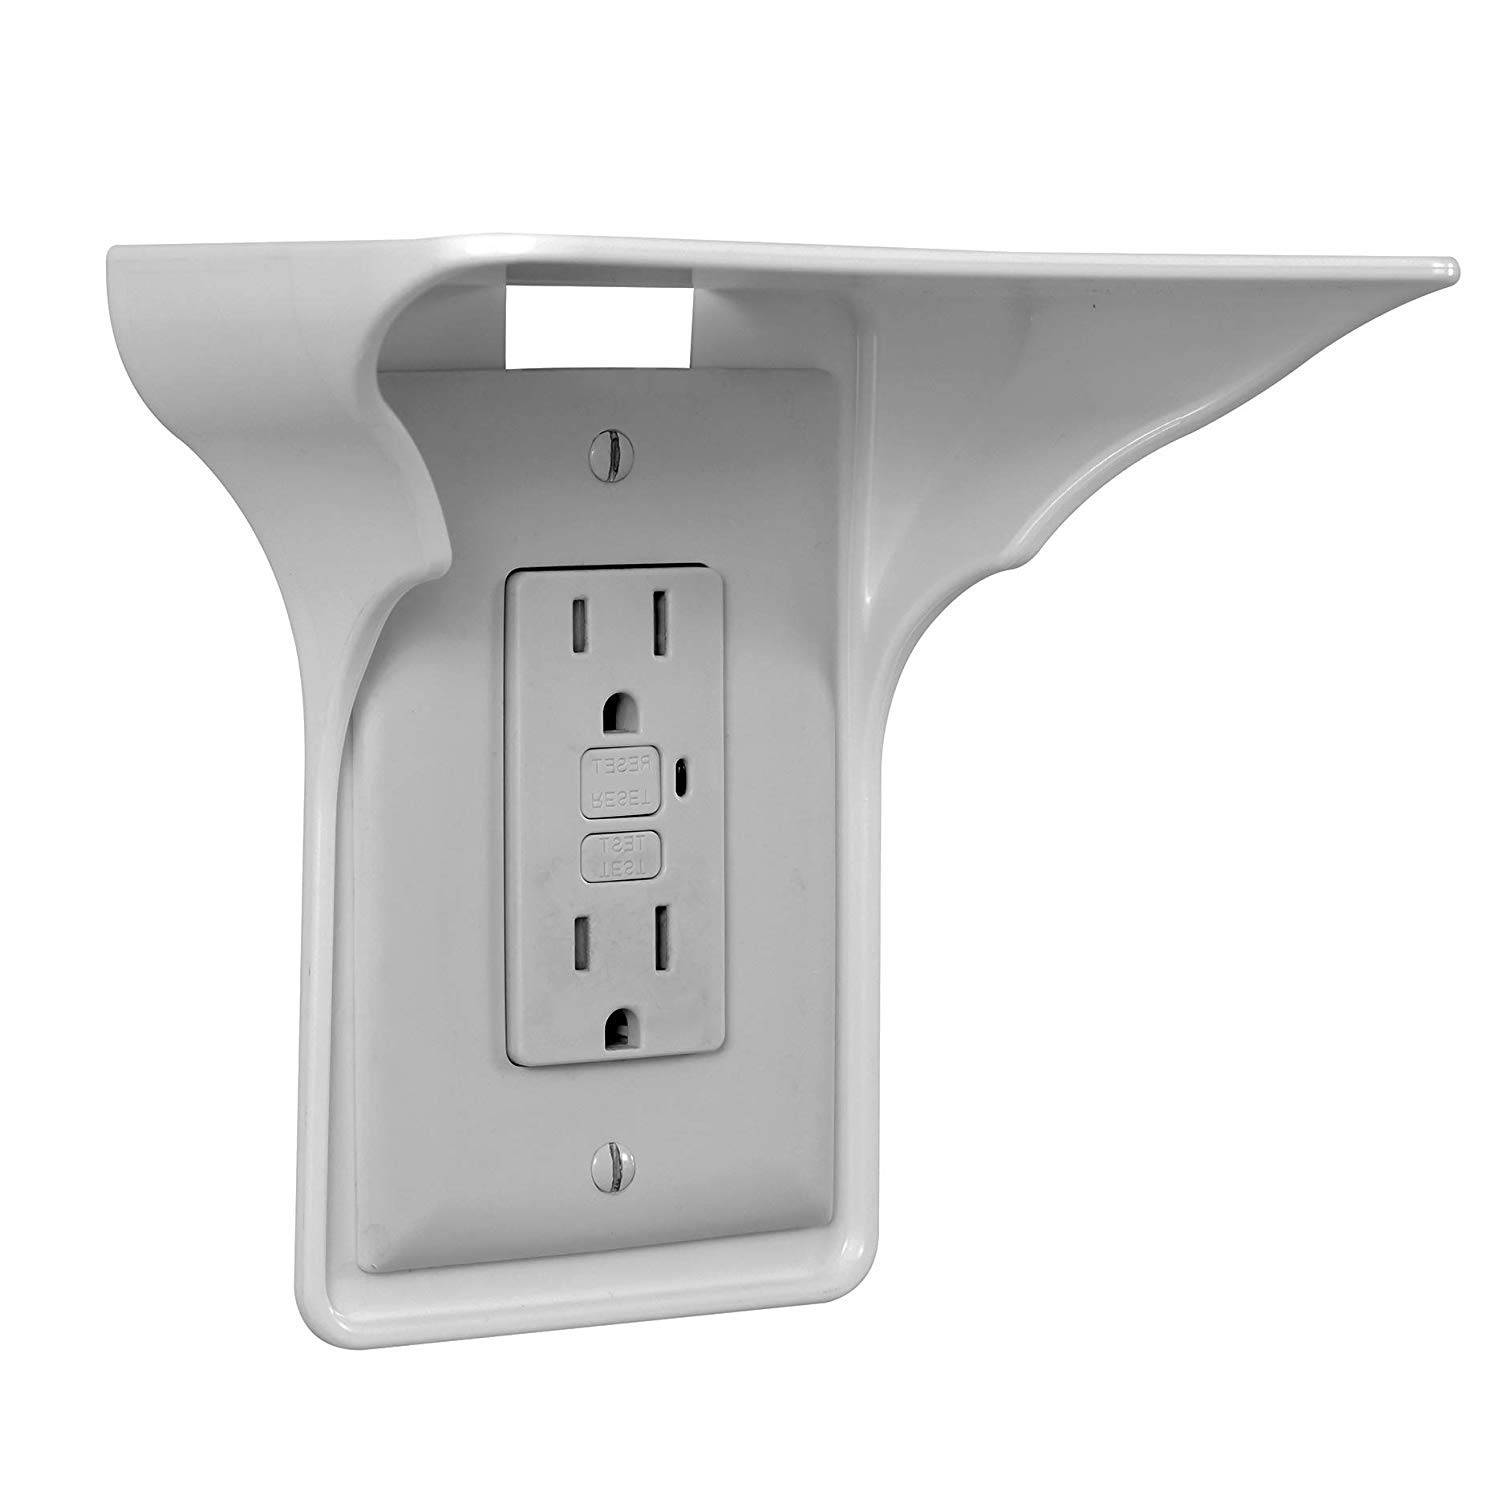 Power Perch .Ultimate Outlet Shelf Easy Installation, No Additional Hardware Required ,Wall Outlet Shelf Power Perch